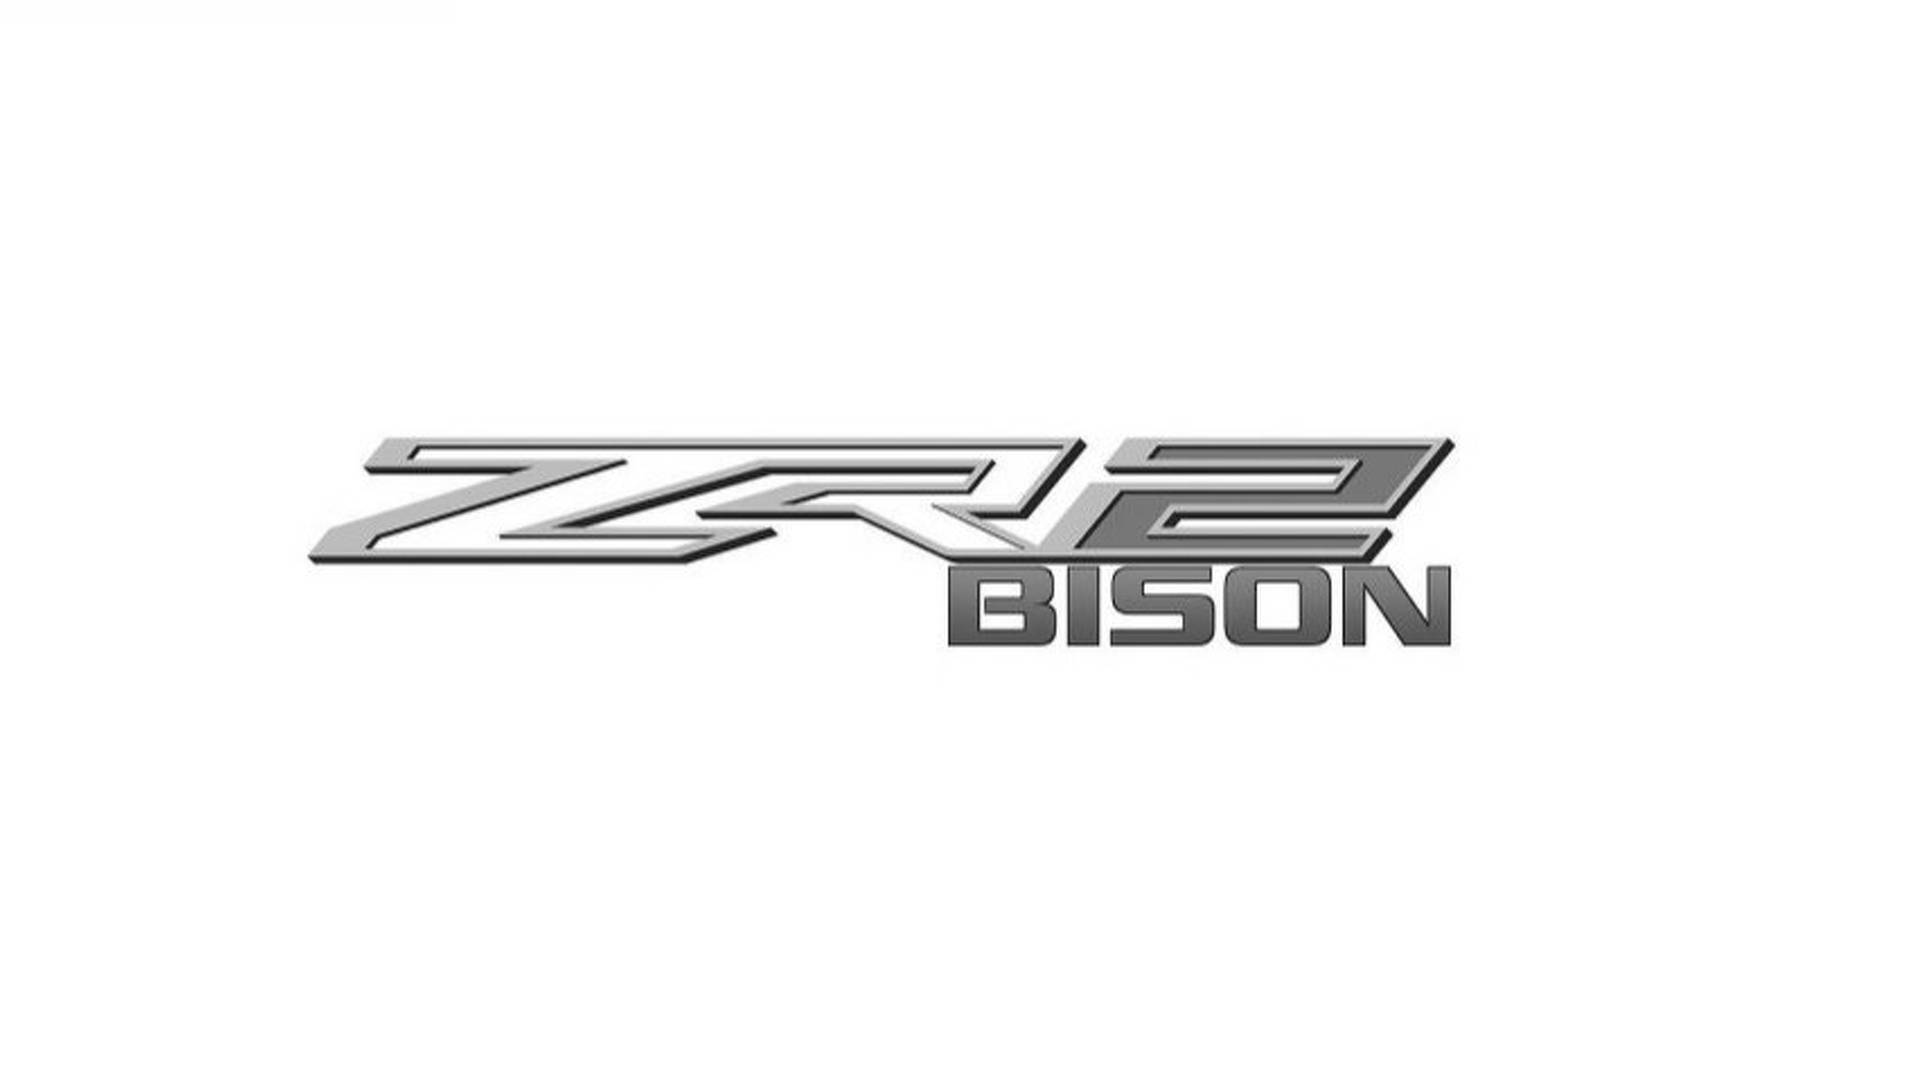 Chevy Files Zr2 Bison Trademark For Potential Colorado Variant